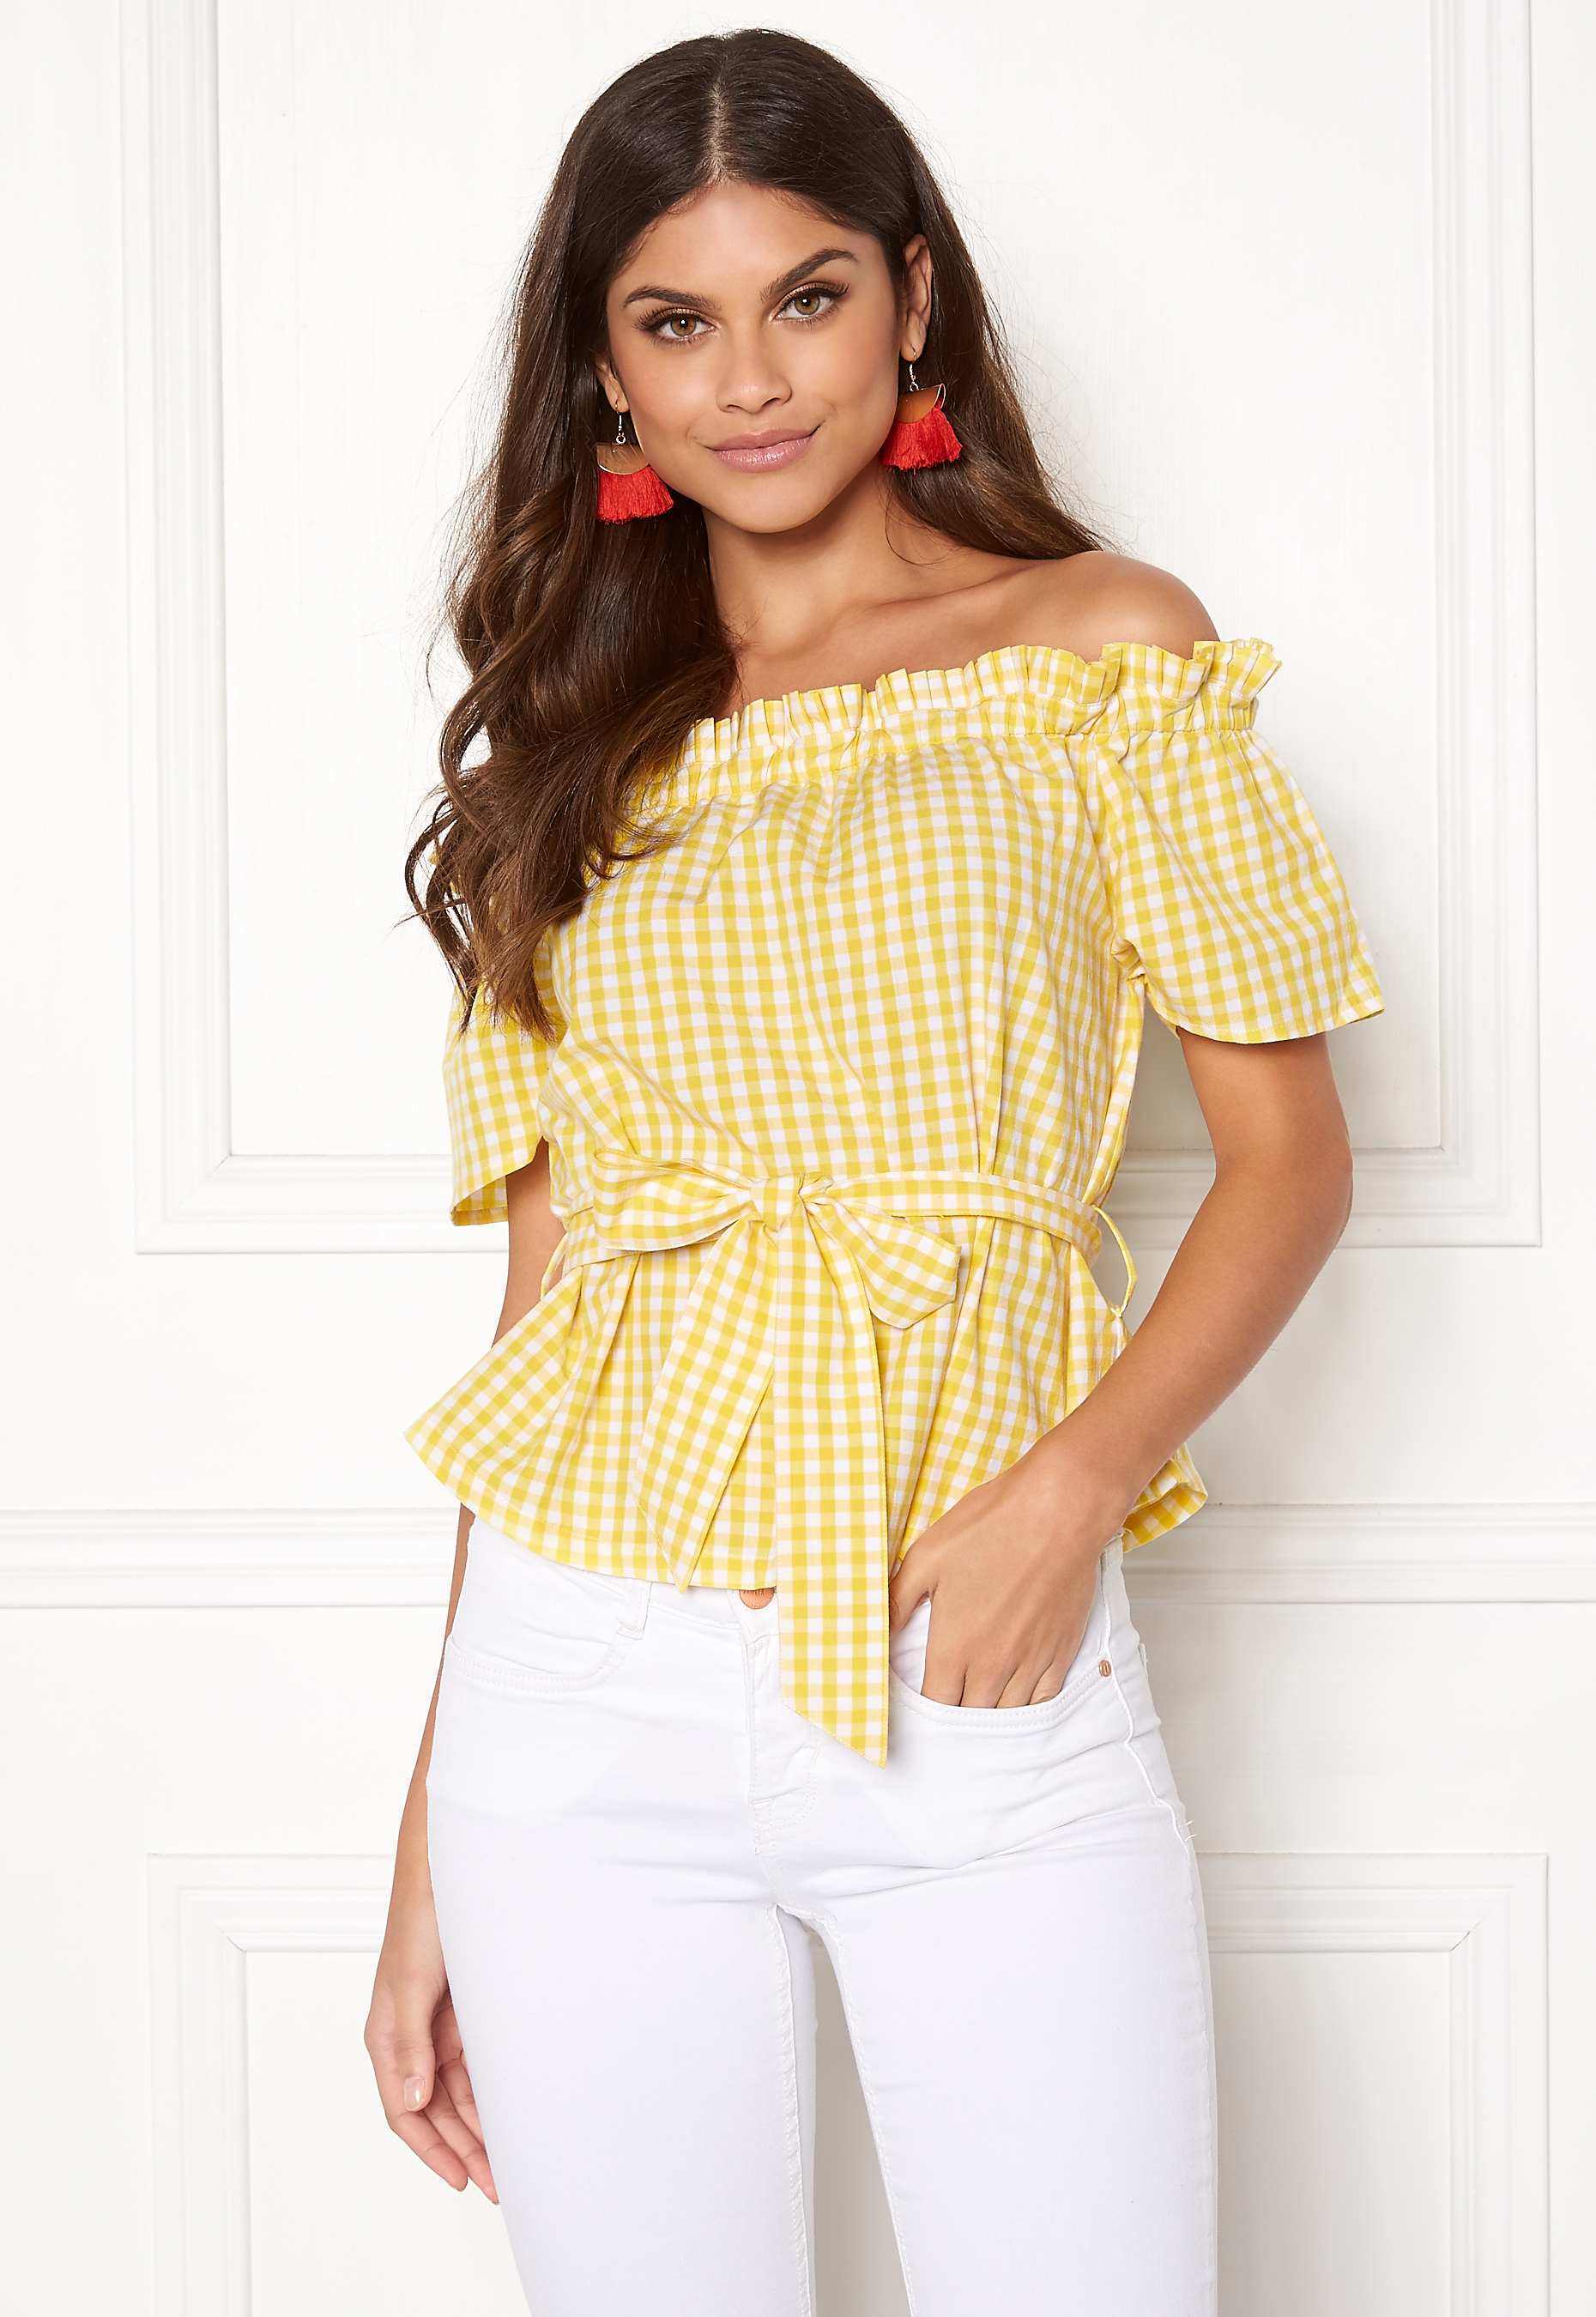 dbf62e36 Make Way Kassey off shoulder top Light yellow / White / Checked ...